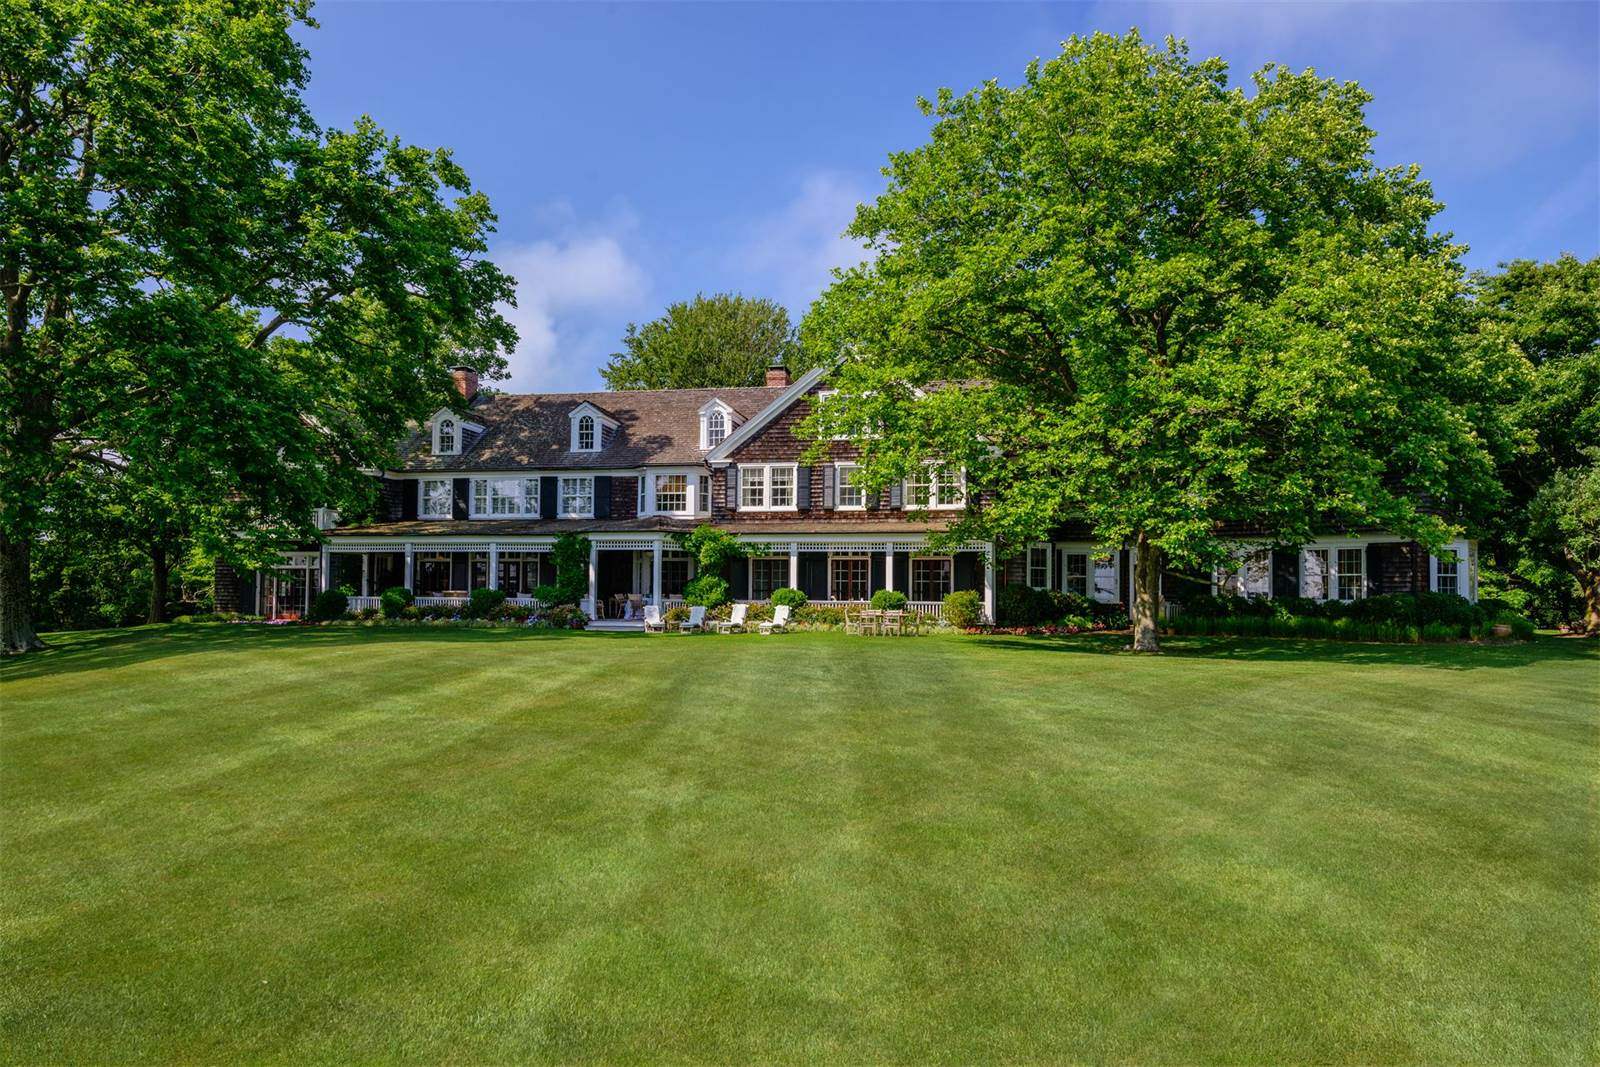 Briar Patch (East Hampton, New York) - 132 milioni di euro